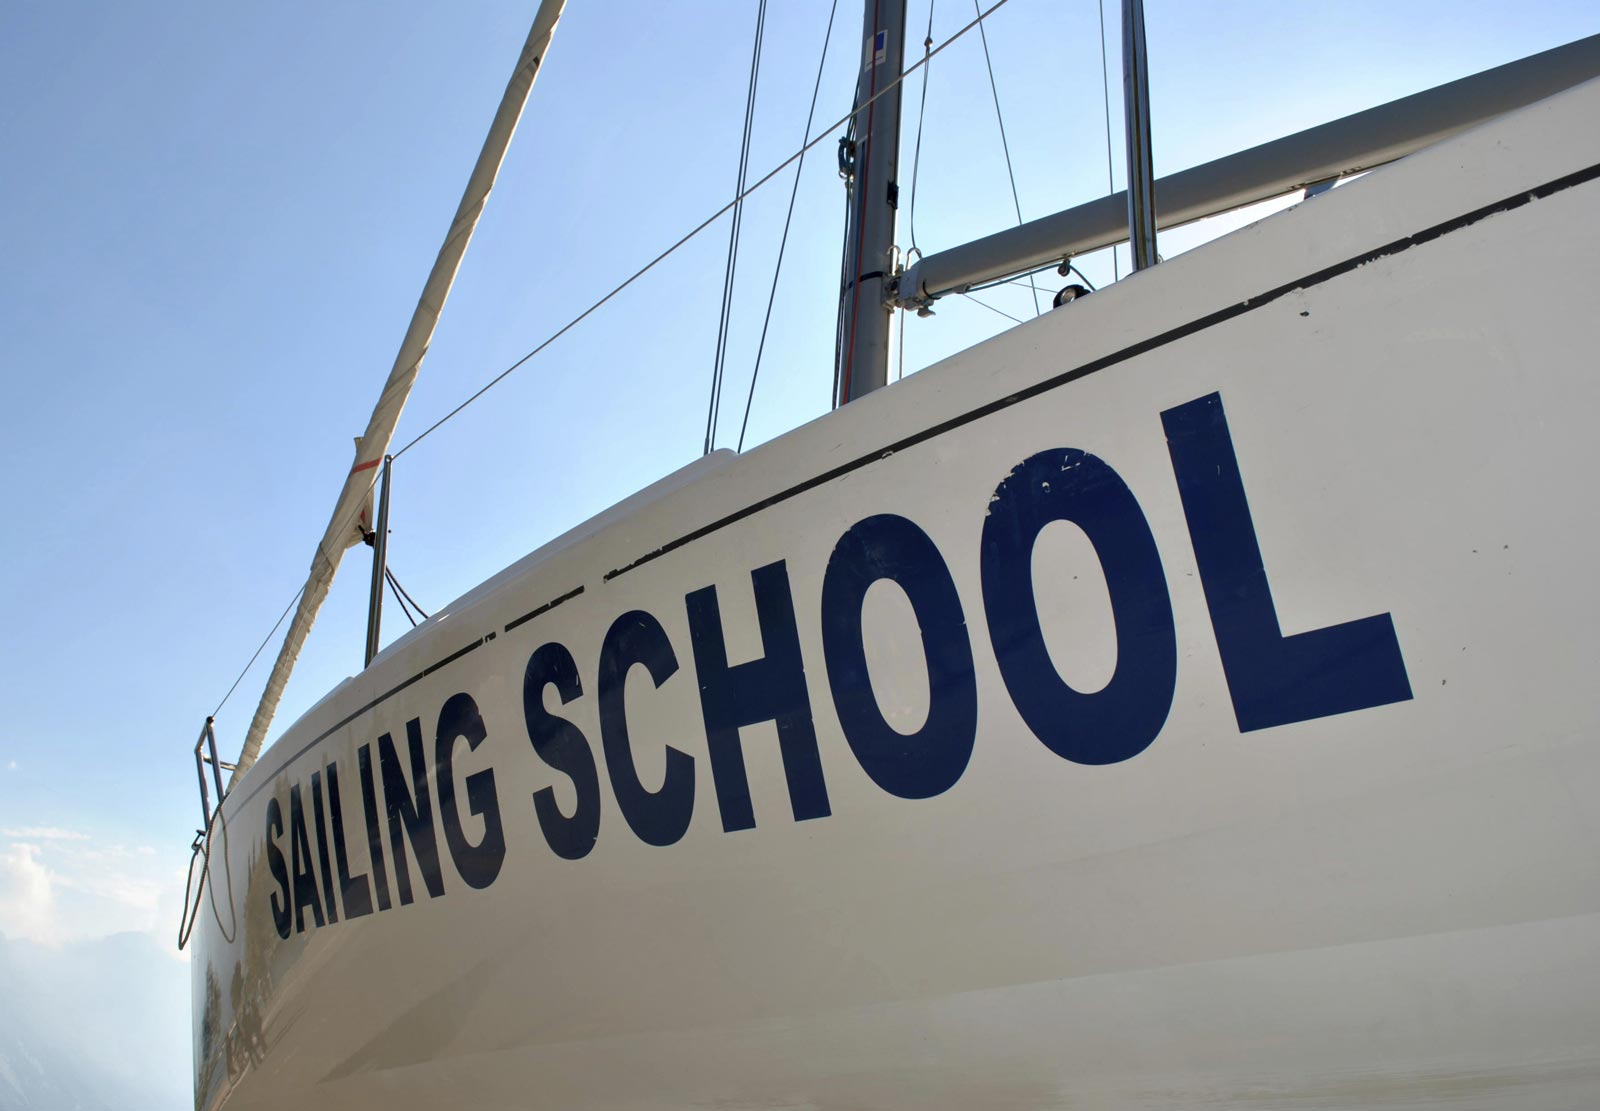 Sailing school Los Angeles